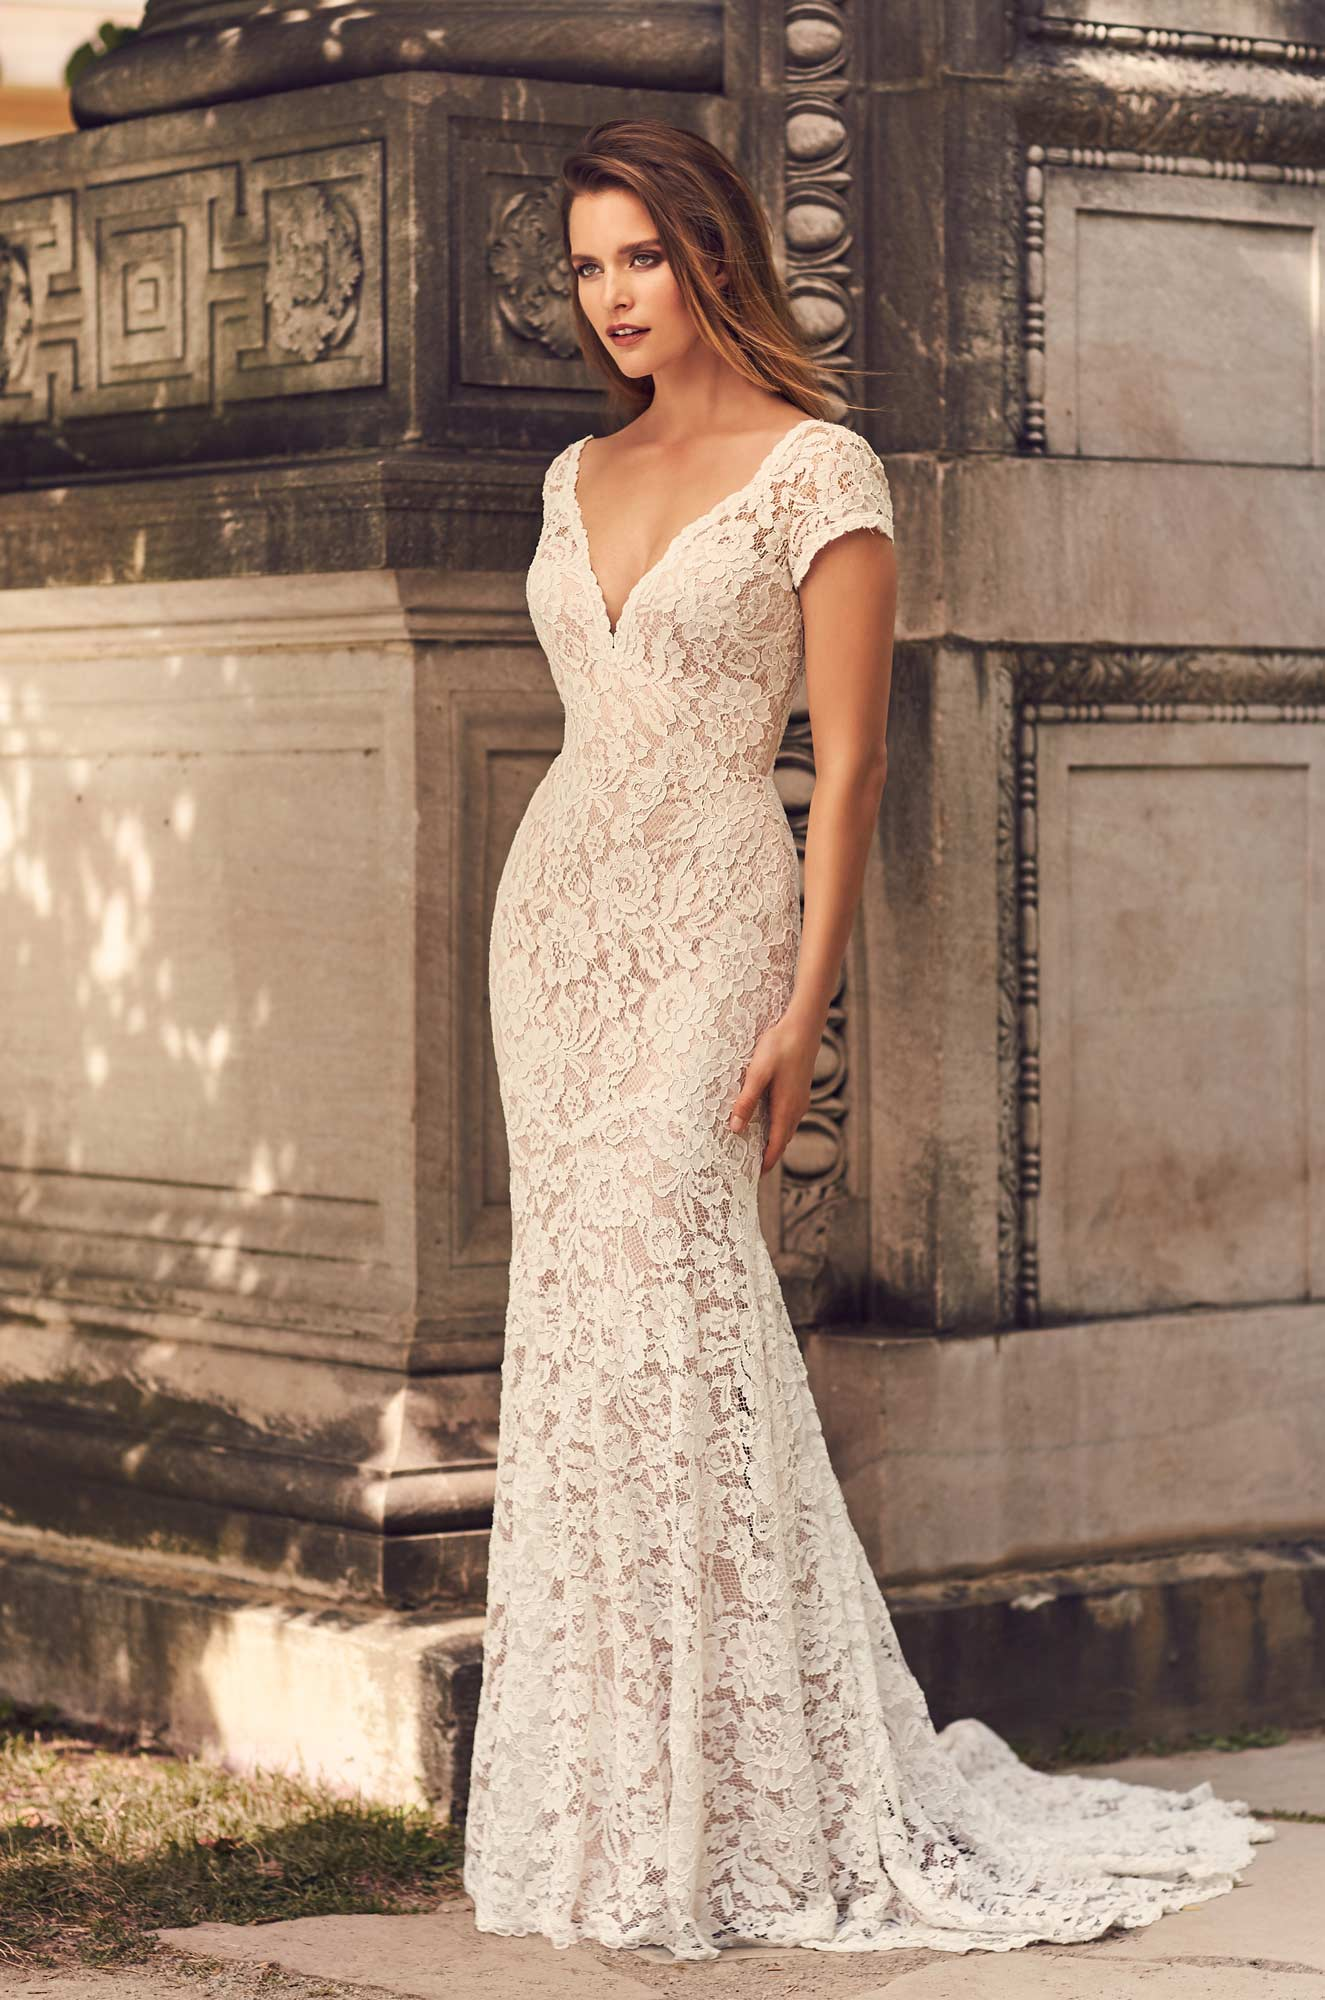 Short Sleeve V-Neckline Wedding Dress - Style #2233 | Mikaella Bridal